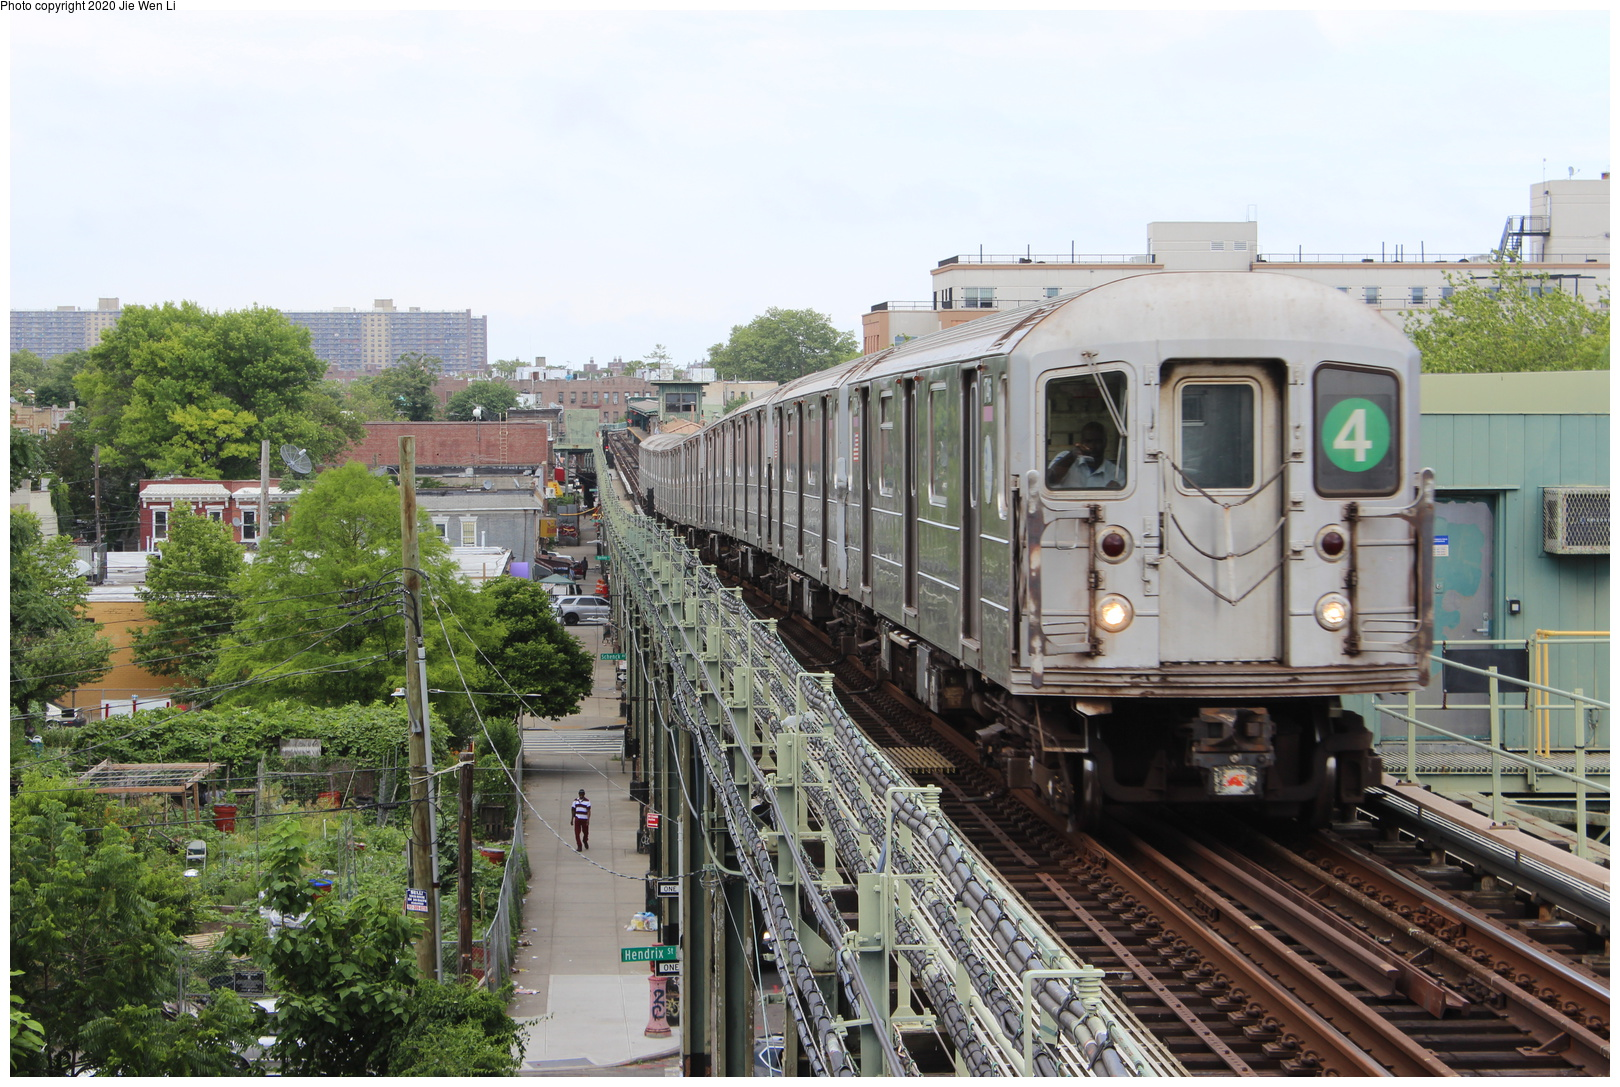 (267k, 1044x726)<br><b>Country:</b> United States<br><b>City:</b> New York<br><b>System:</b> New York City Transit<br><b>Line:</b> BMT Myrtle Avenue Line<br><b>Location:</b> Metropolitan Avenue <br><b>Car:</b> BMT Multi  <br><b>Photo by:</b> Joel Shanus<br><b>Viewed (this week/total):</b> 2 / 1801